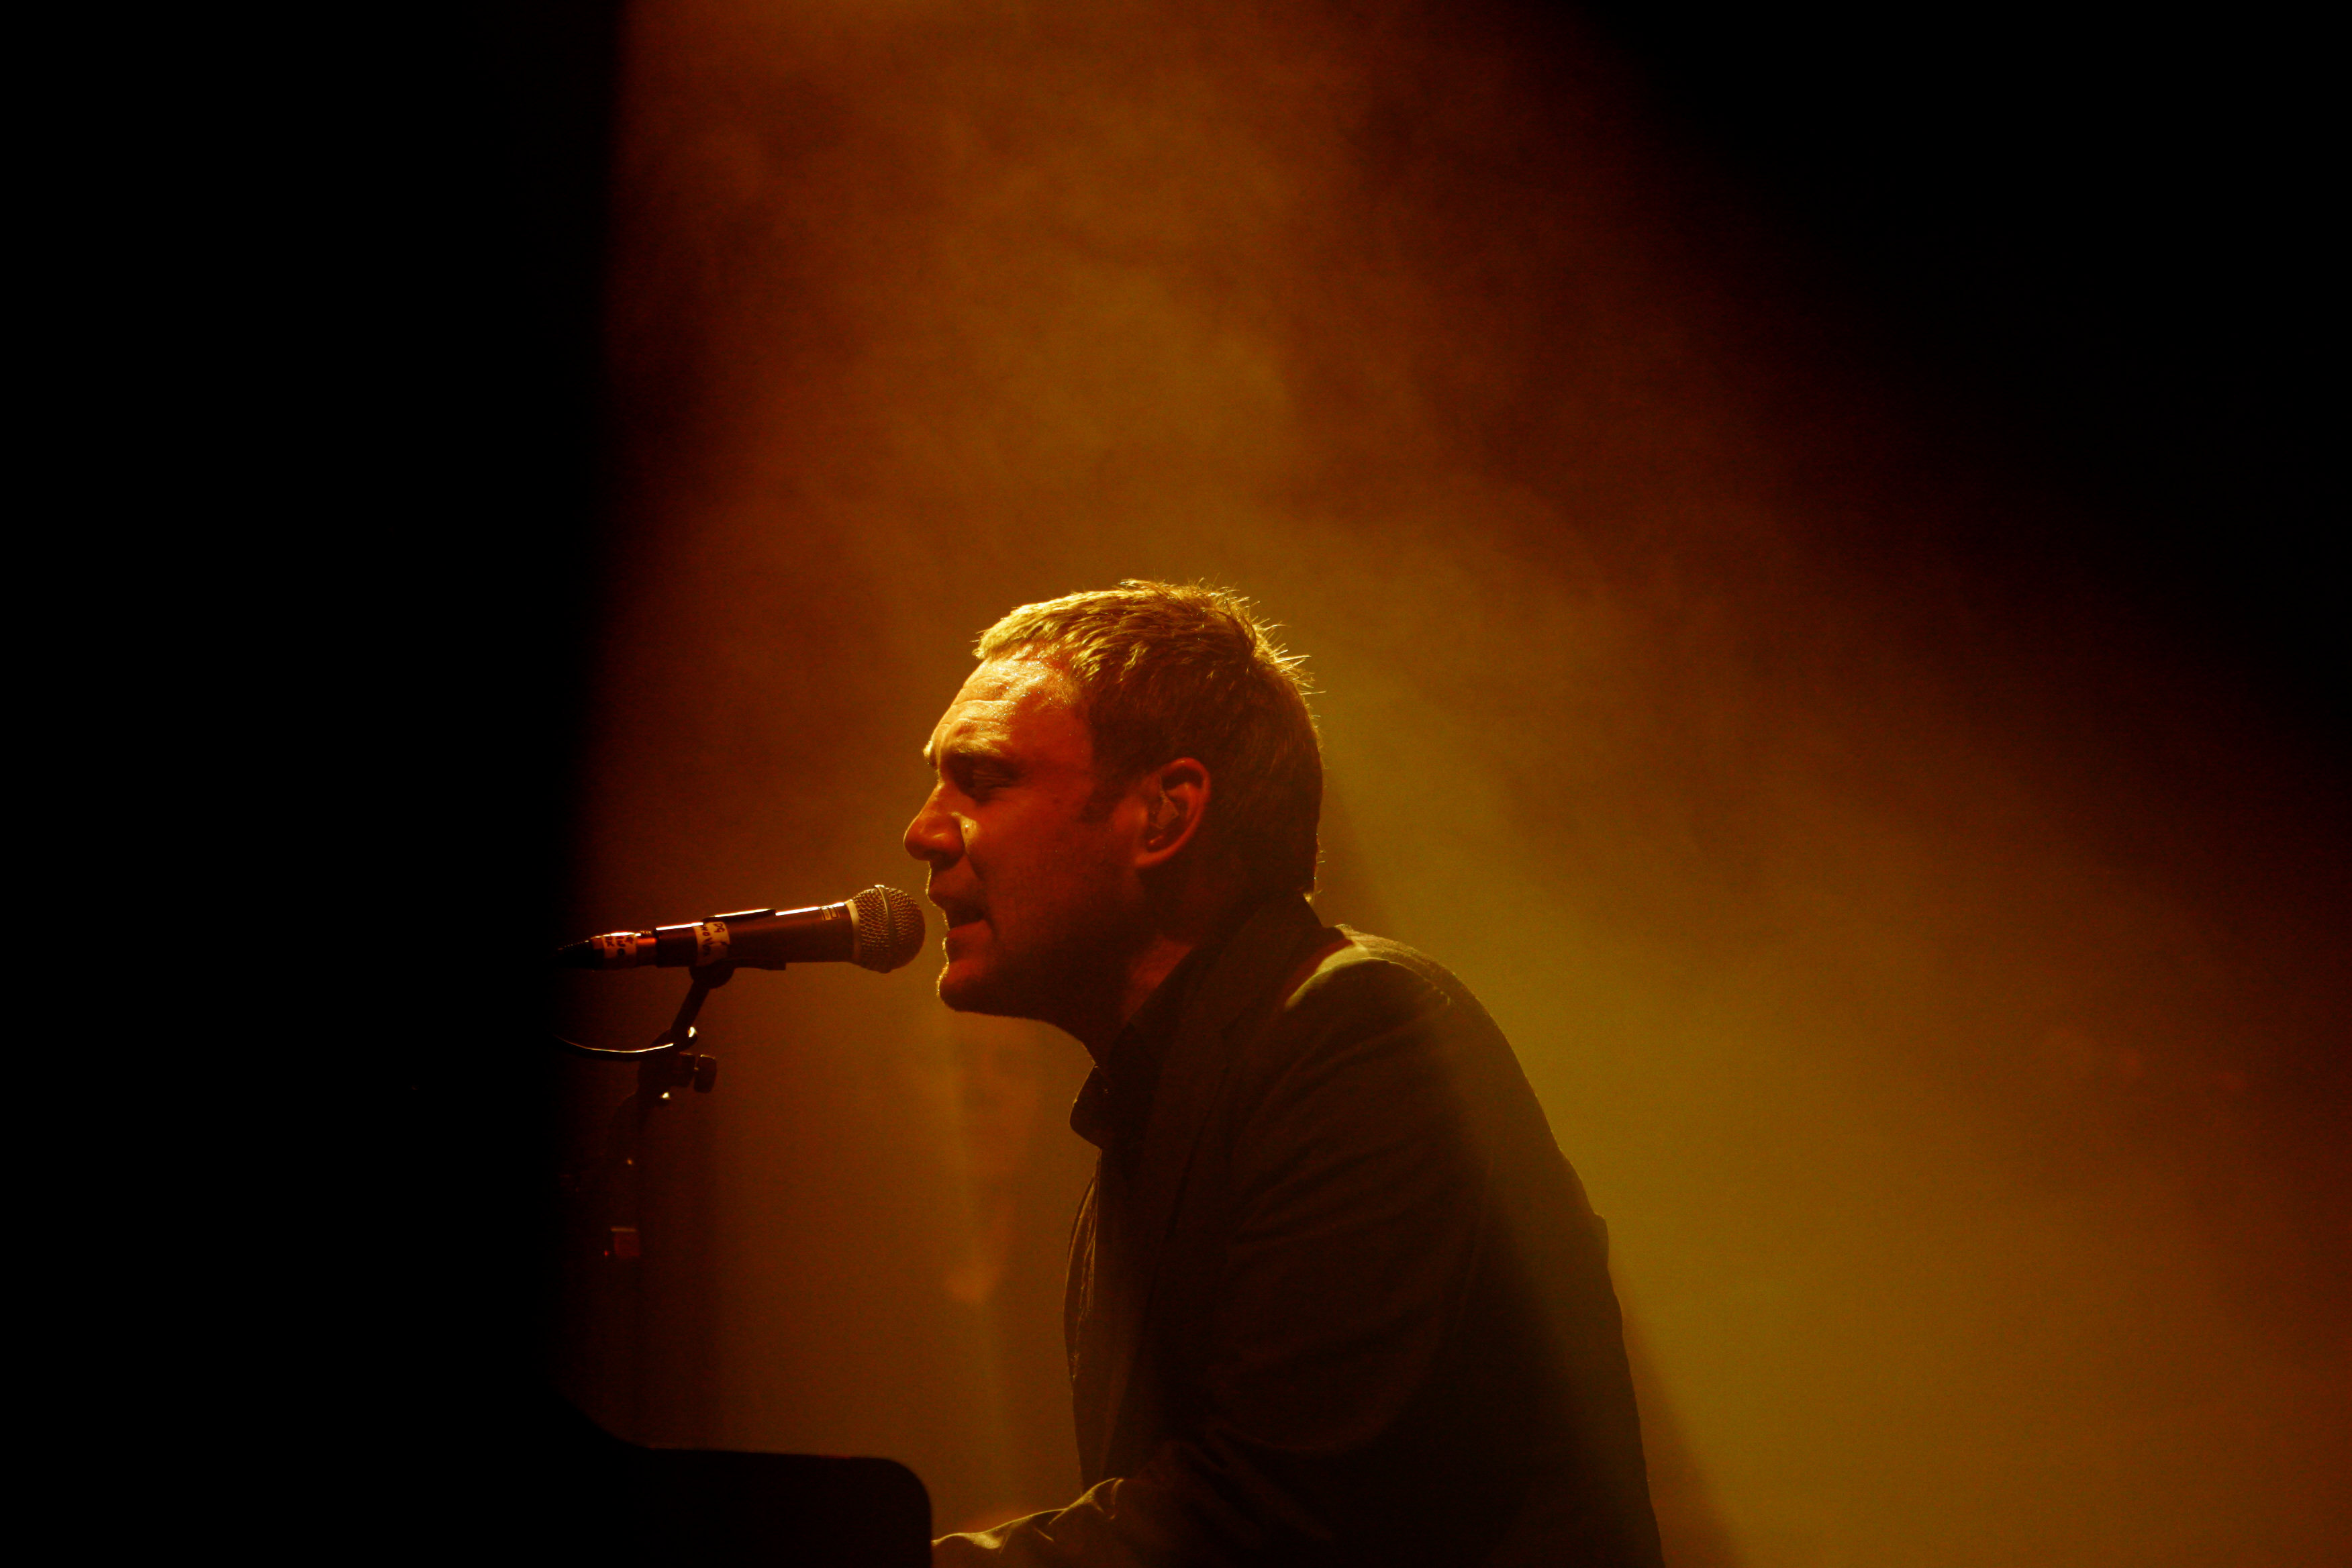 David Gray performing at the Byron Bay Blues and Roots music festival.